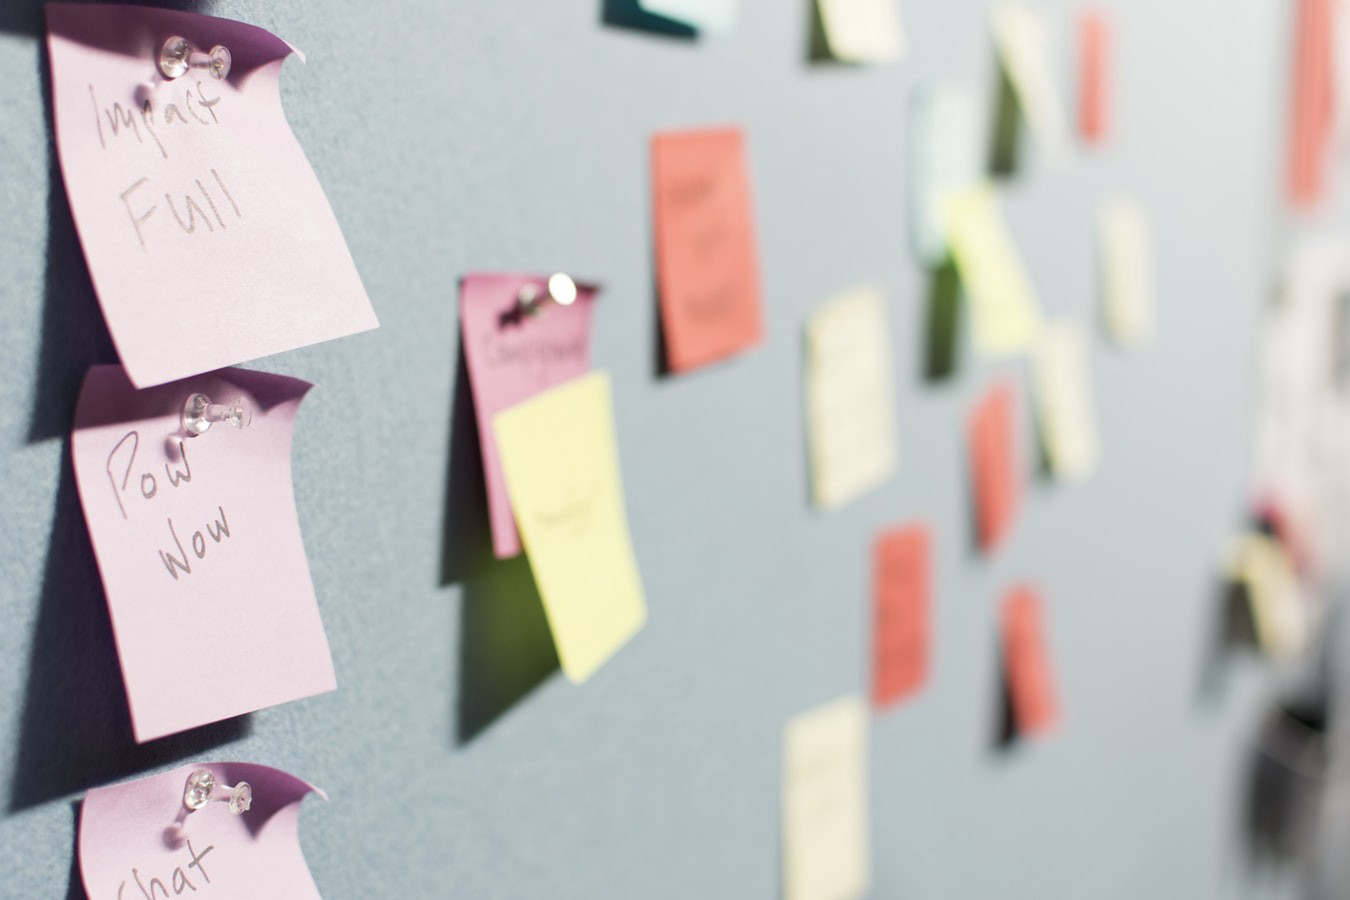 A light green wall with colourful sticky notes scattered on it